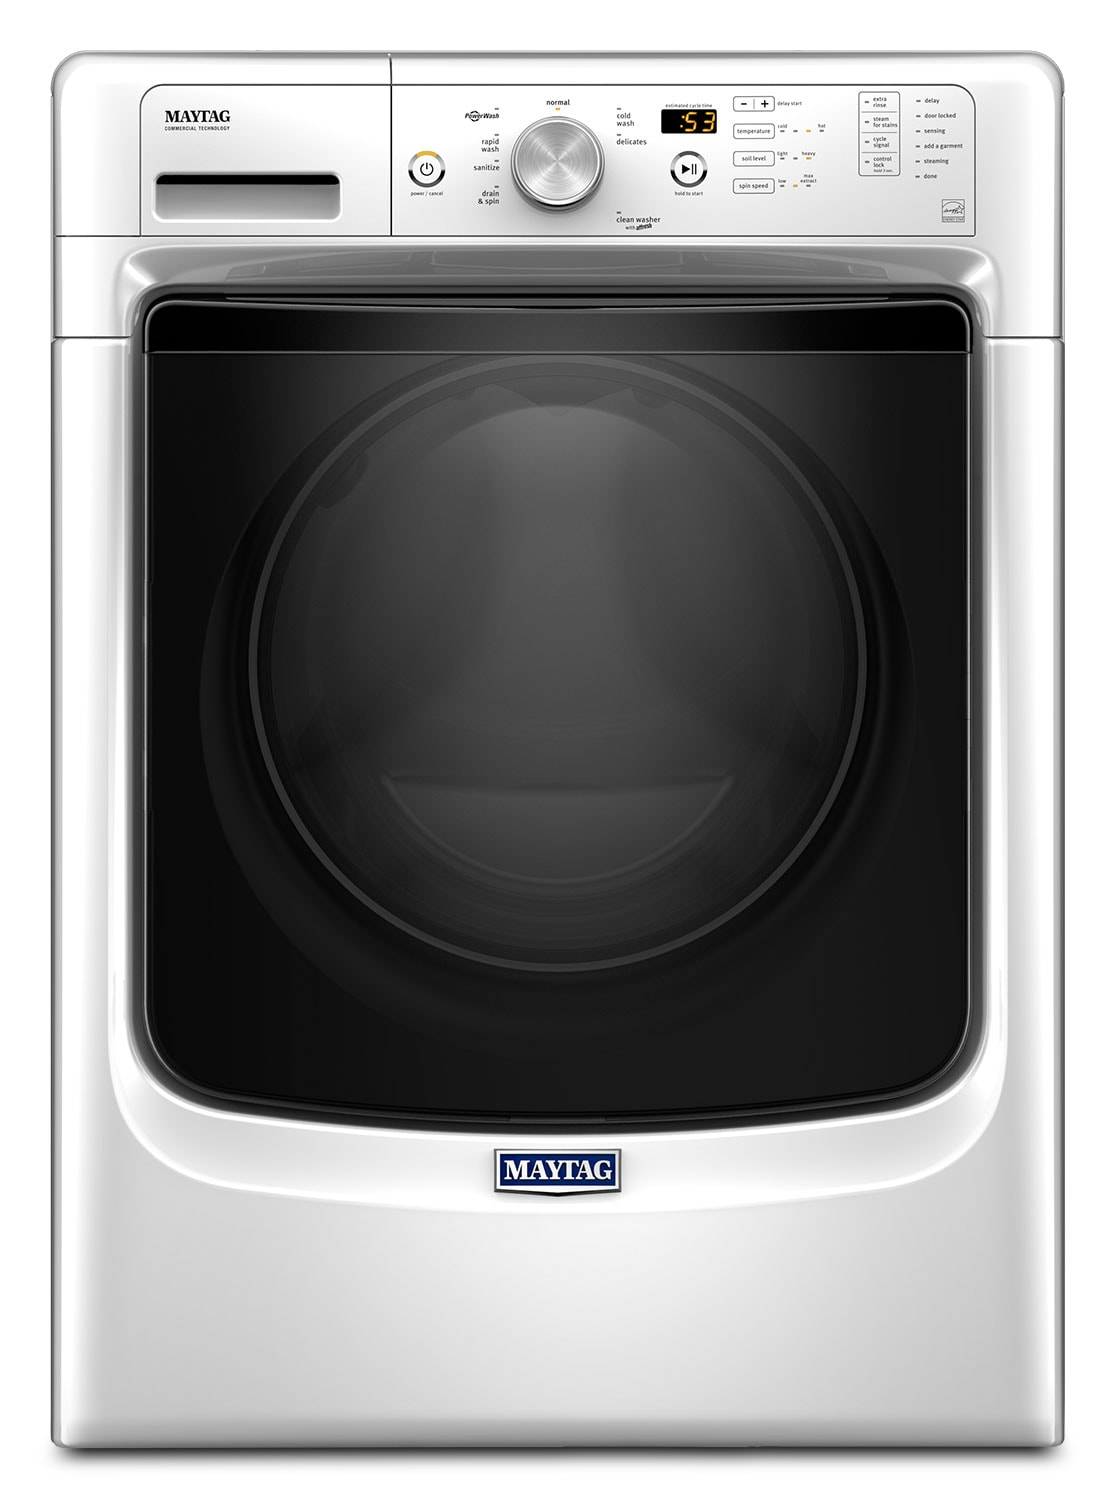 Washers and Dryers - Maytag White Front-Load Washer (5.0 Cu. Ft. IEC) - MHW3500FW